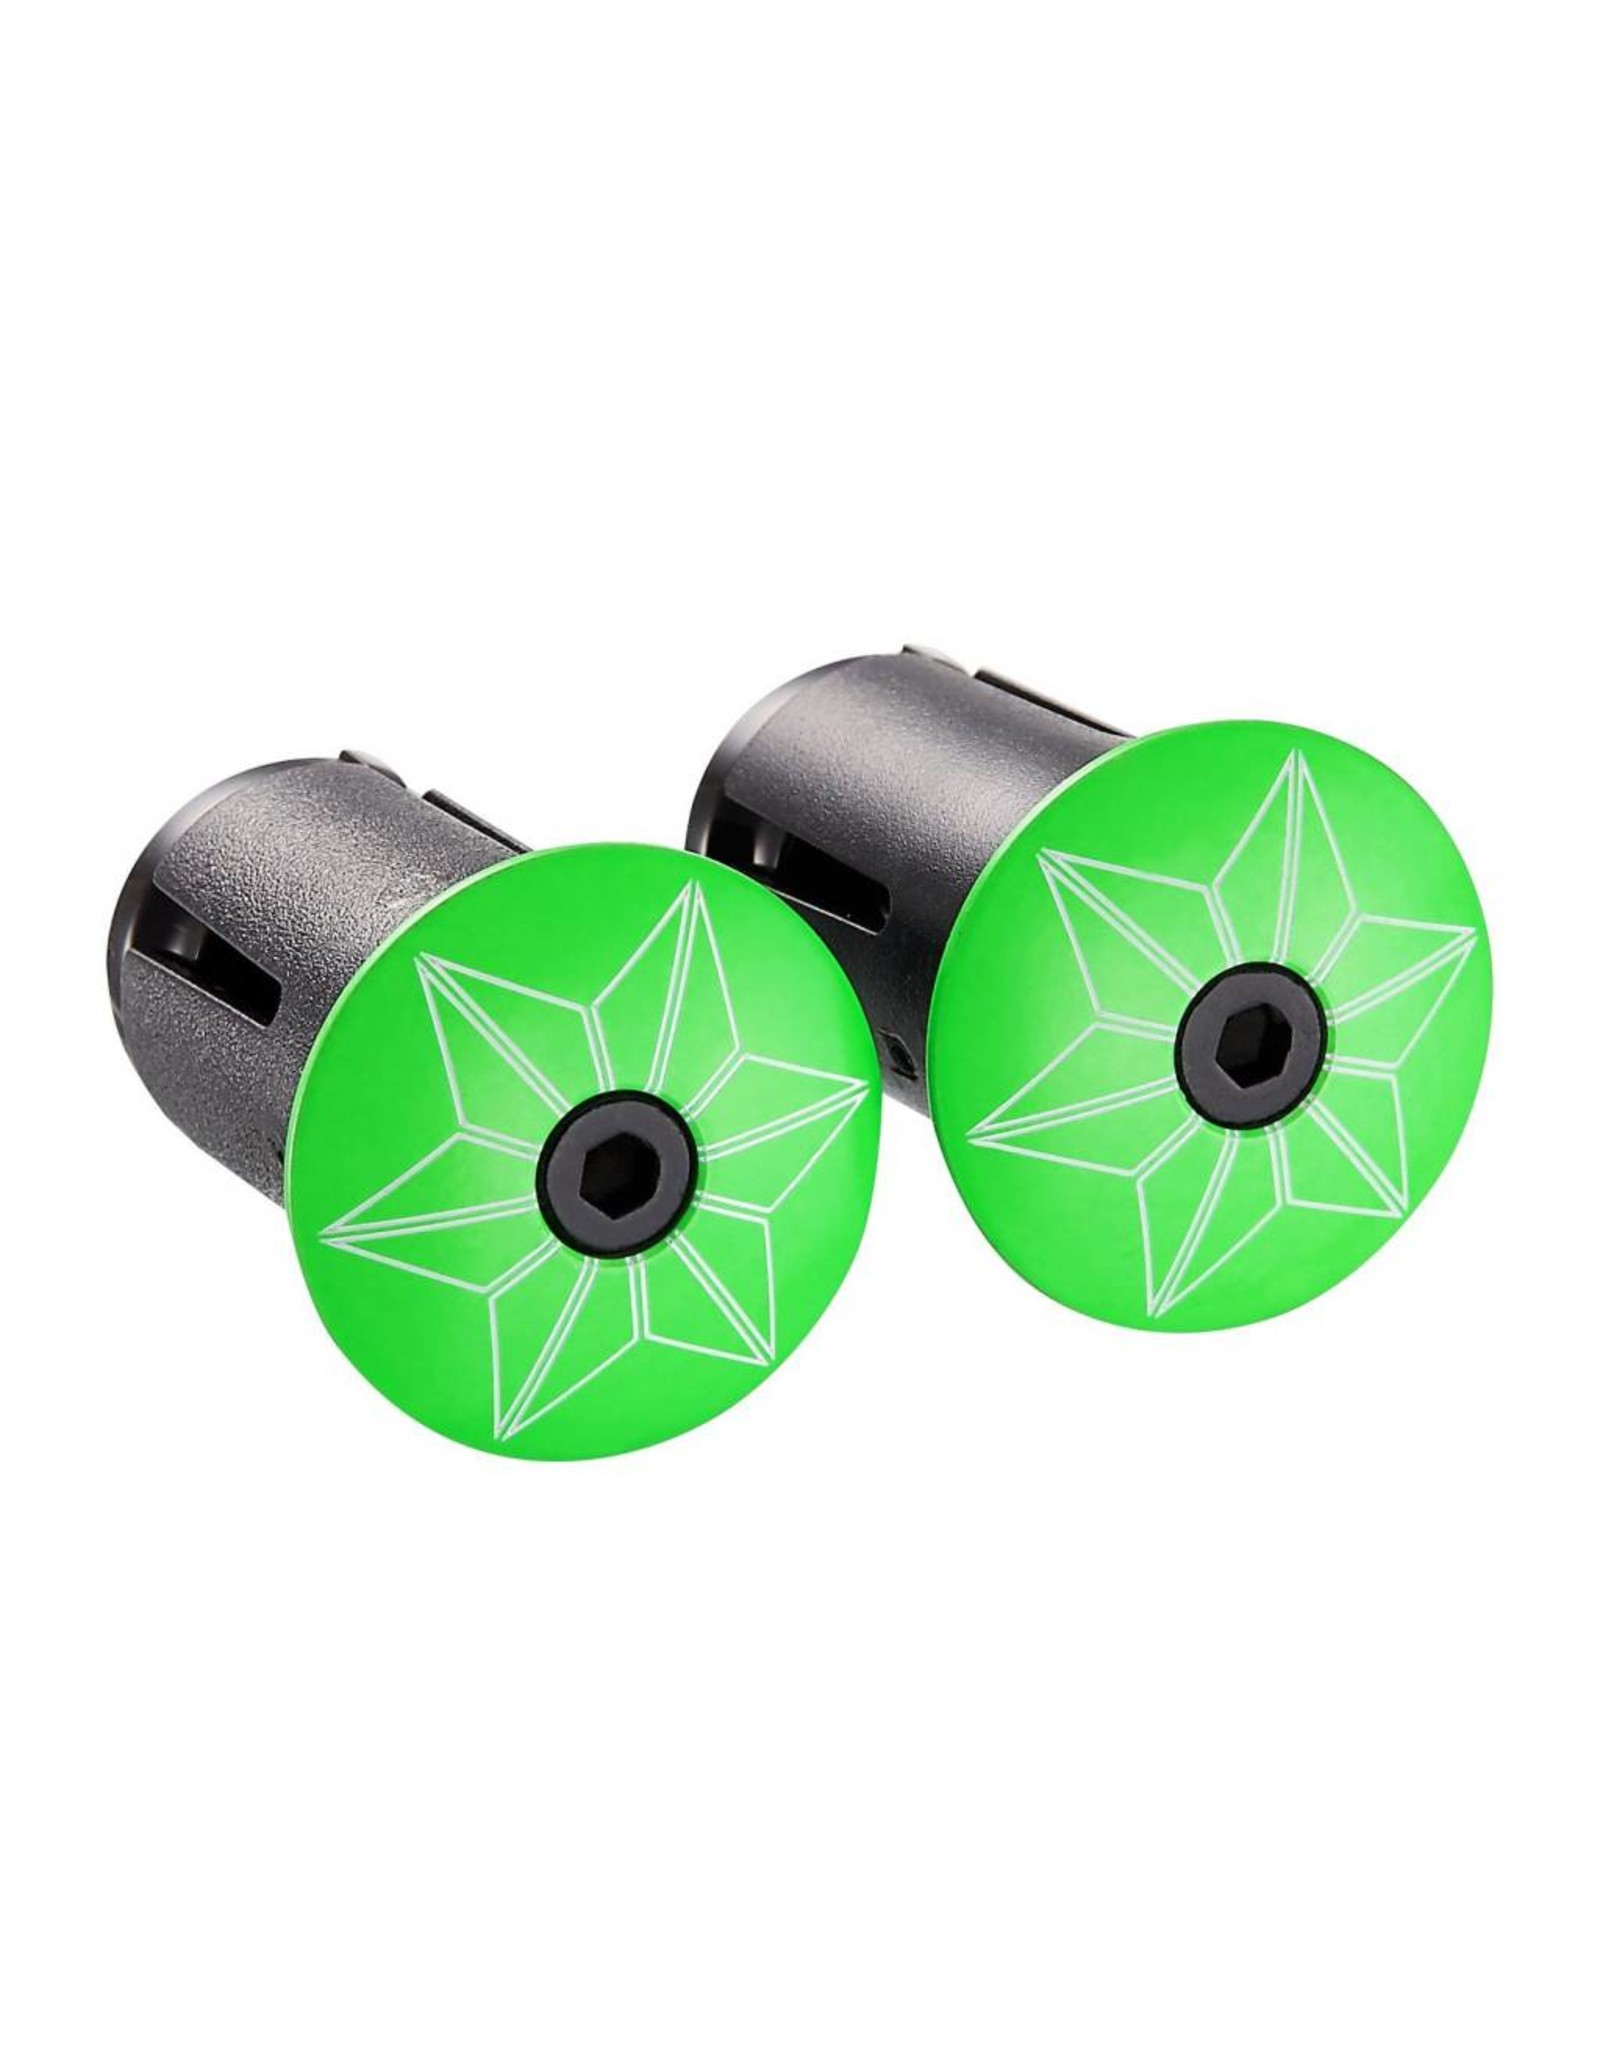 Supacaz Supacaz SSK Star Fade Neon Green Super Sticky Kush Handlebar Tape,  /set